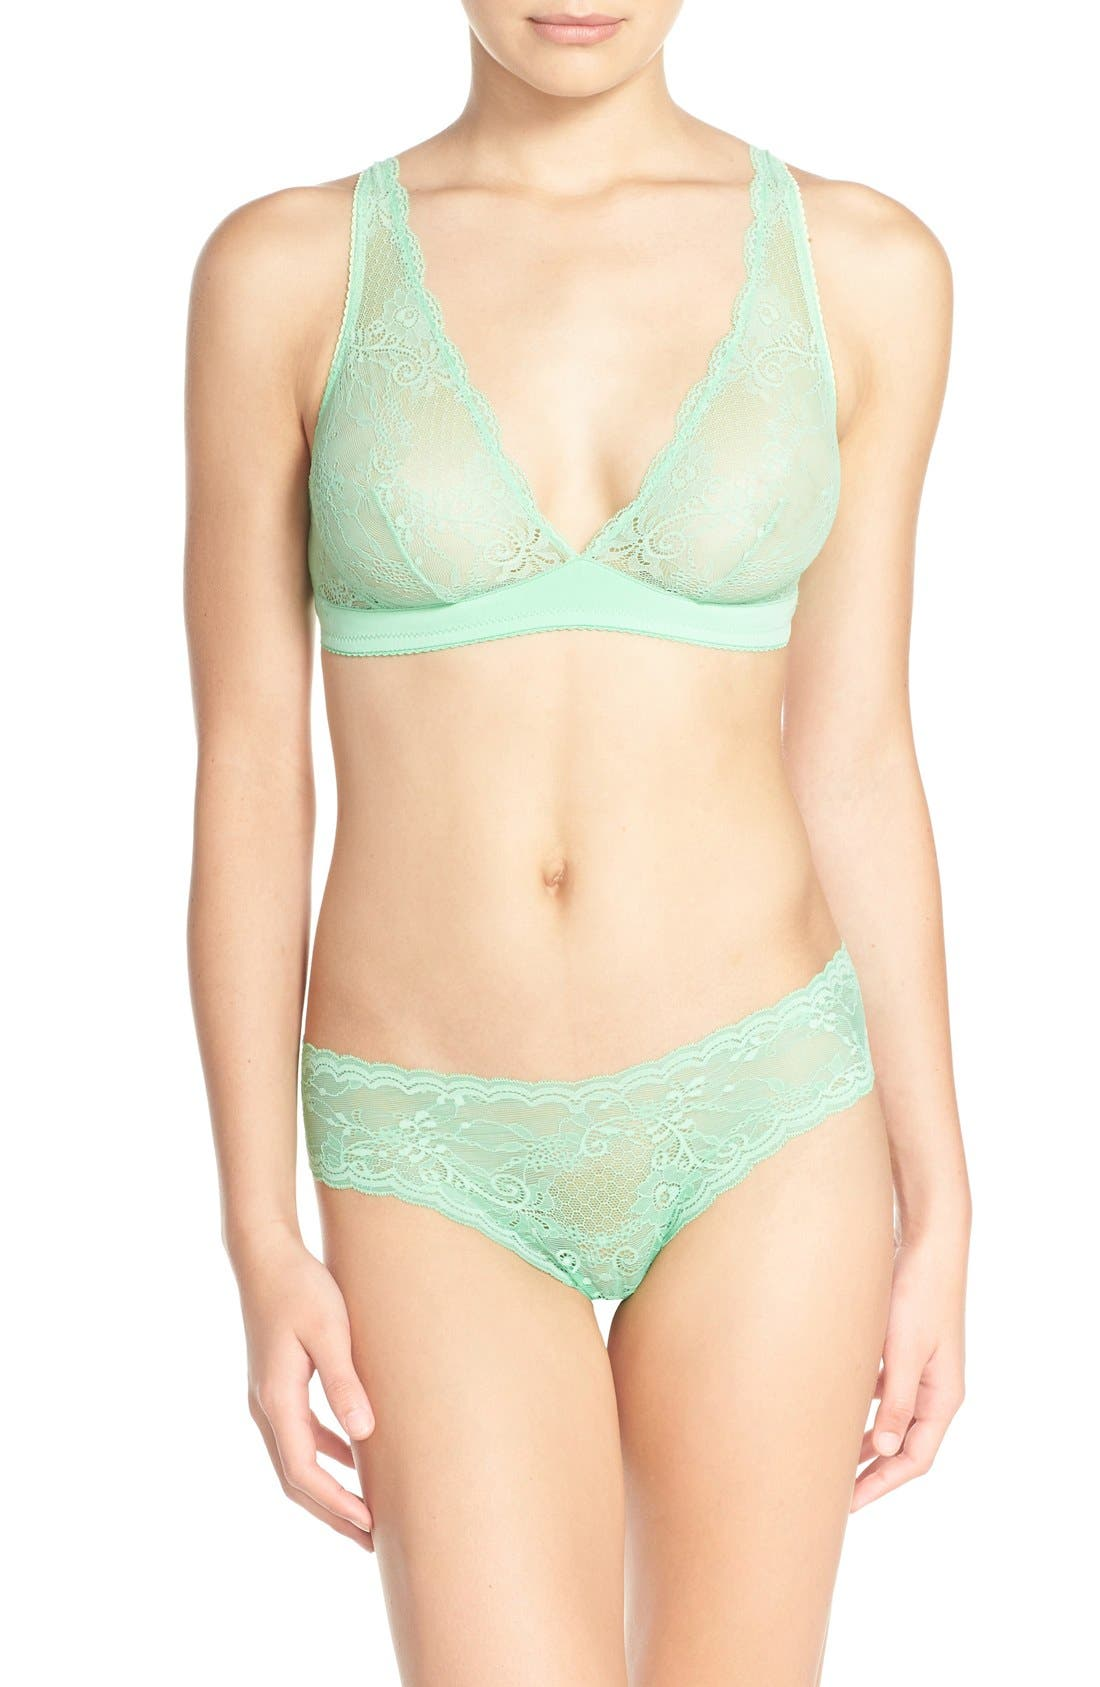 'Trenta' Low Rise Lace Thong,                             Alternate thumbnail 93, color,